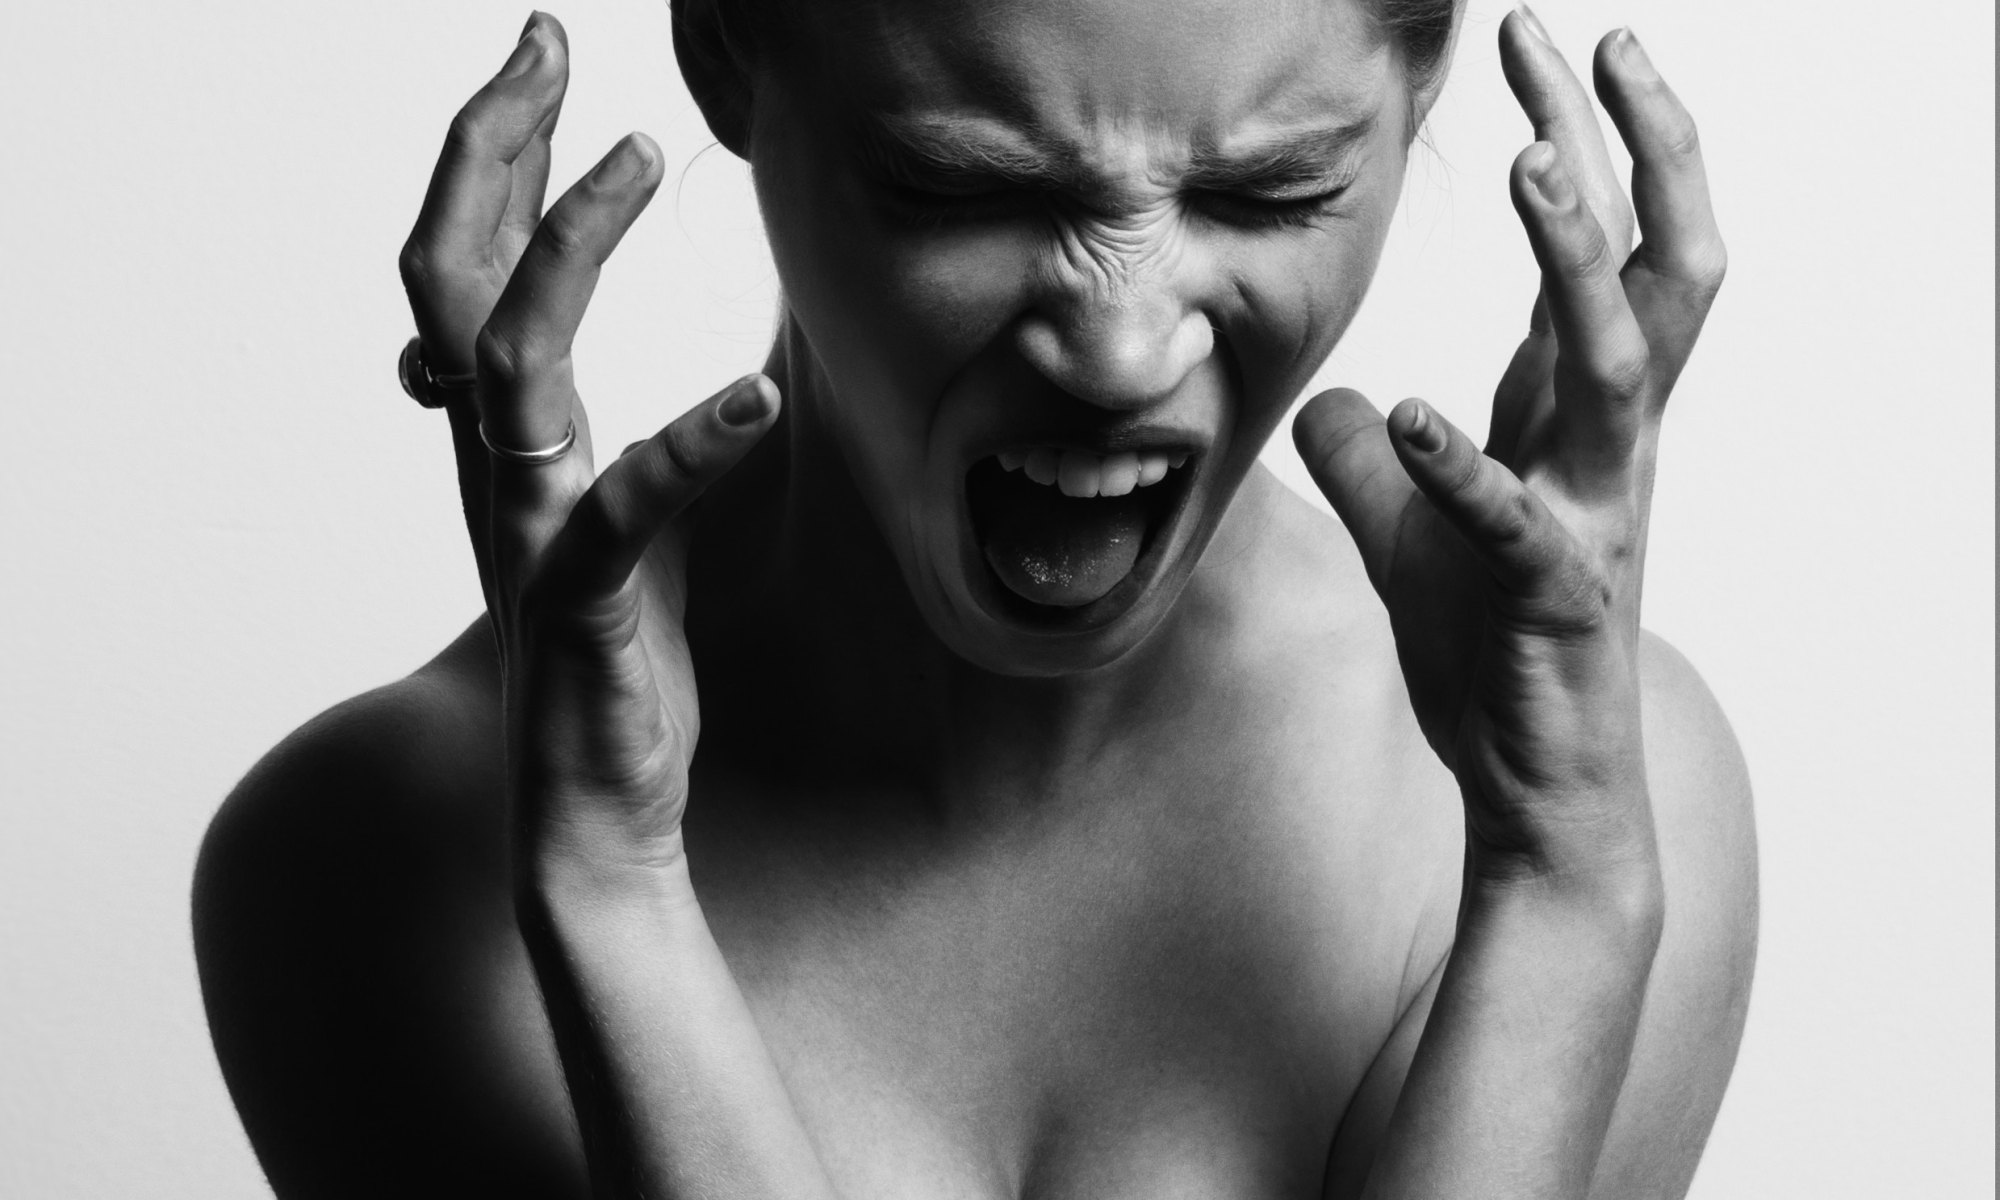 Naked woman yelling and feeling stressed